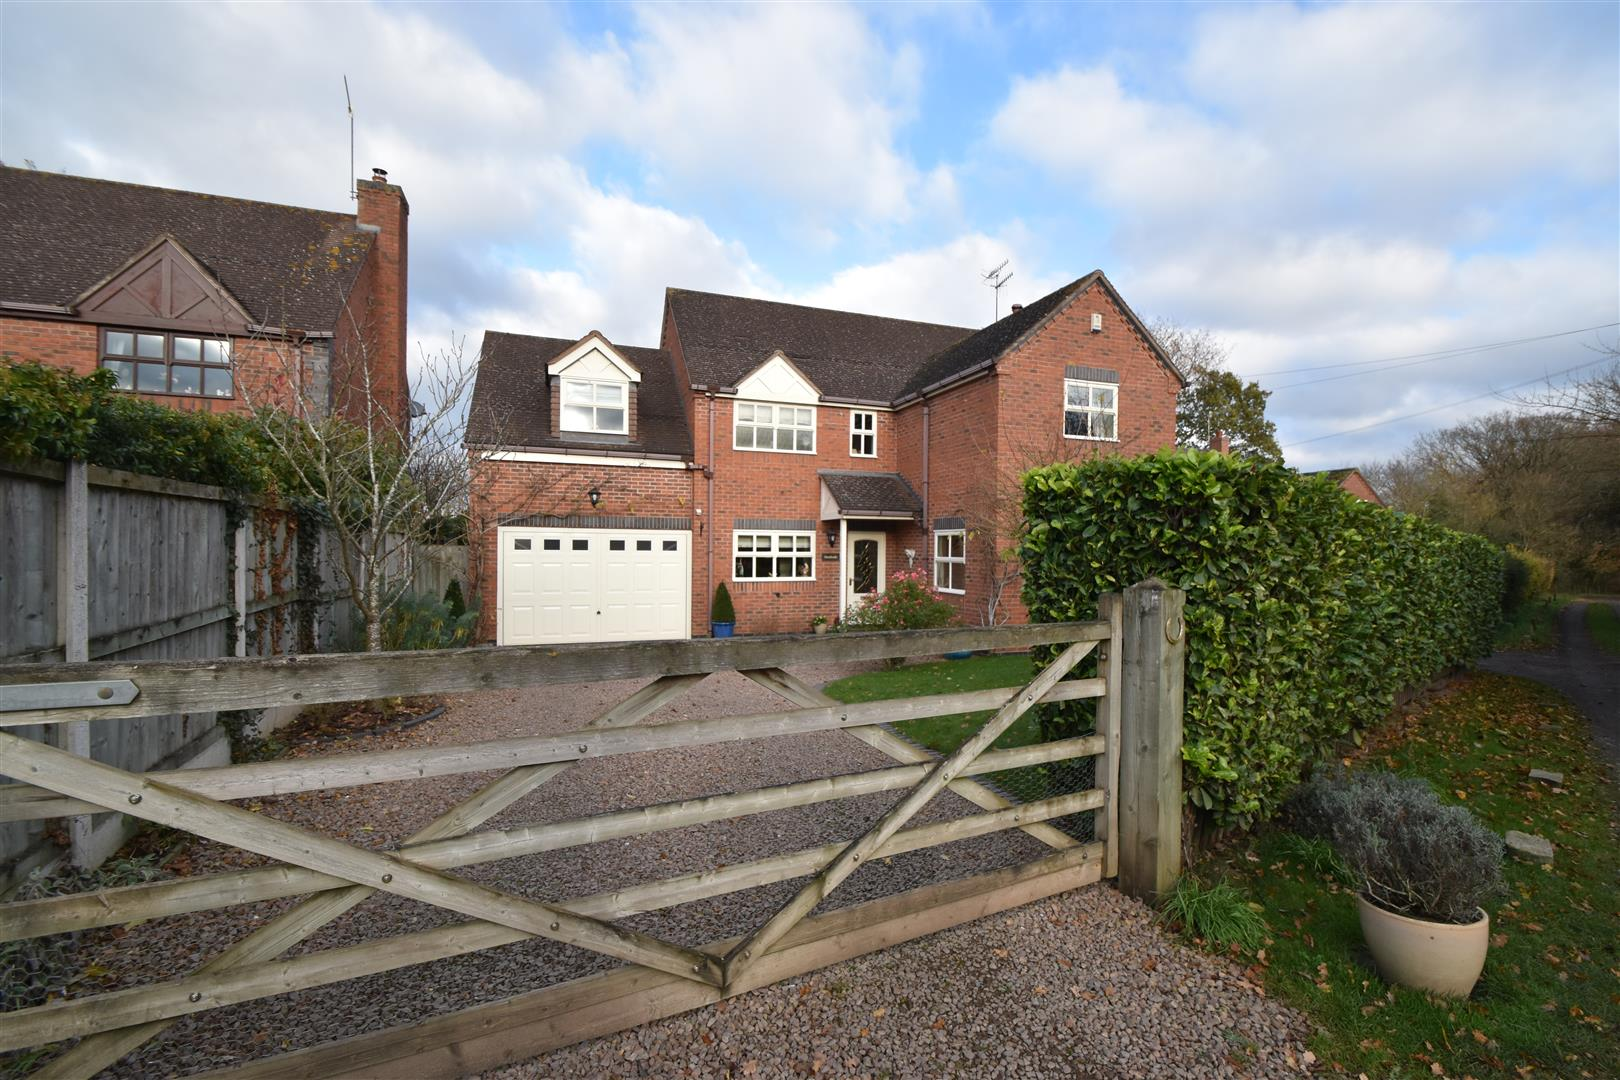 4 Bedrooms House for sale in Broadheath Common, Lower Broadheath, Worcester